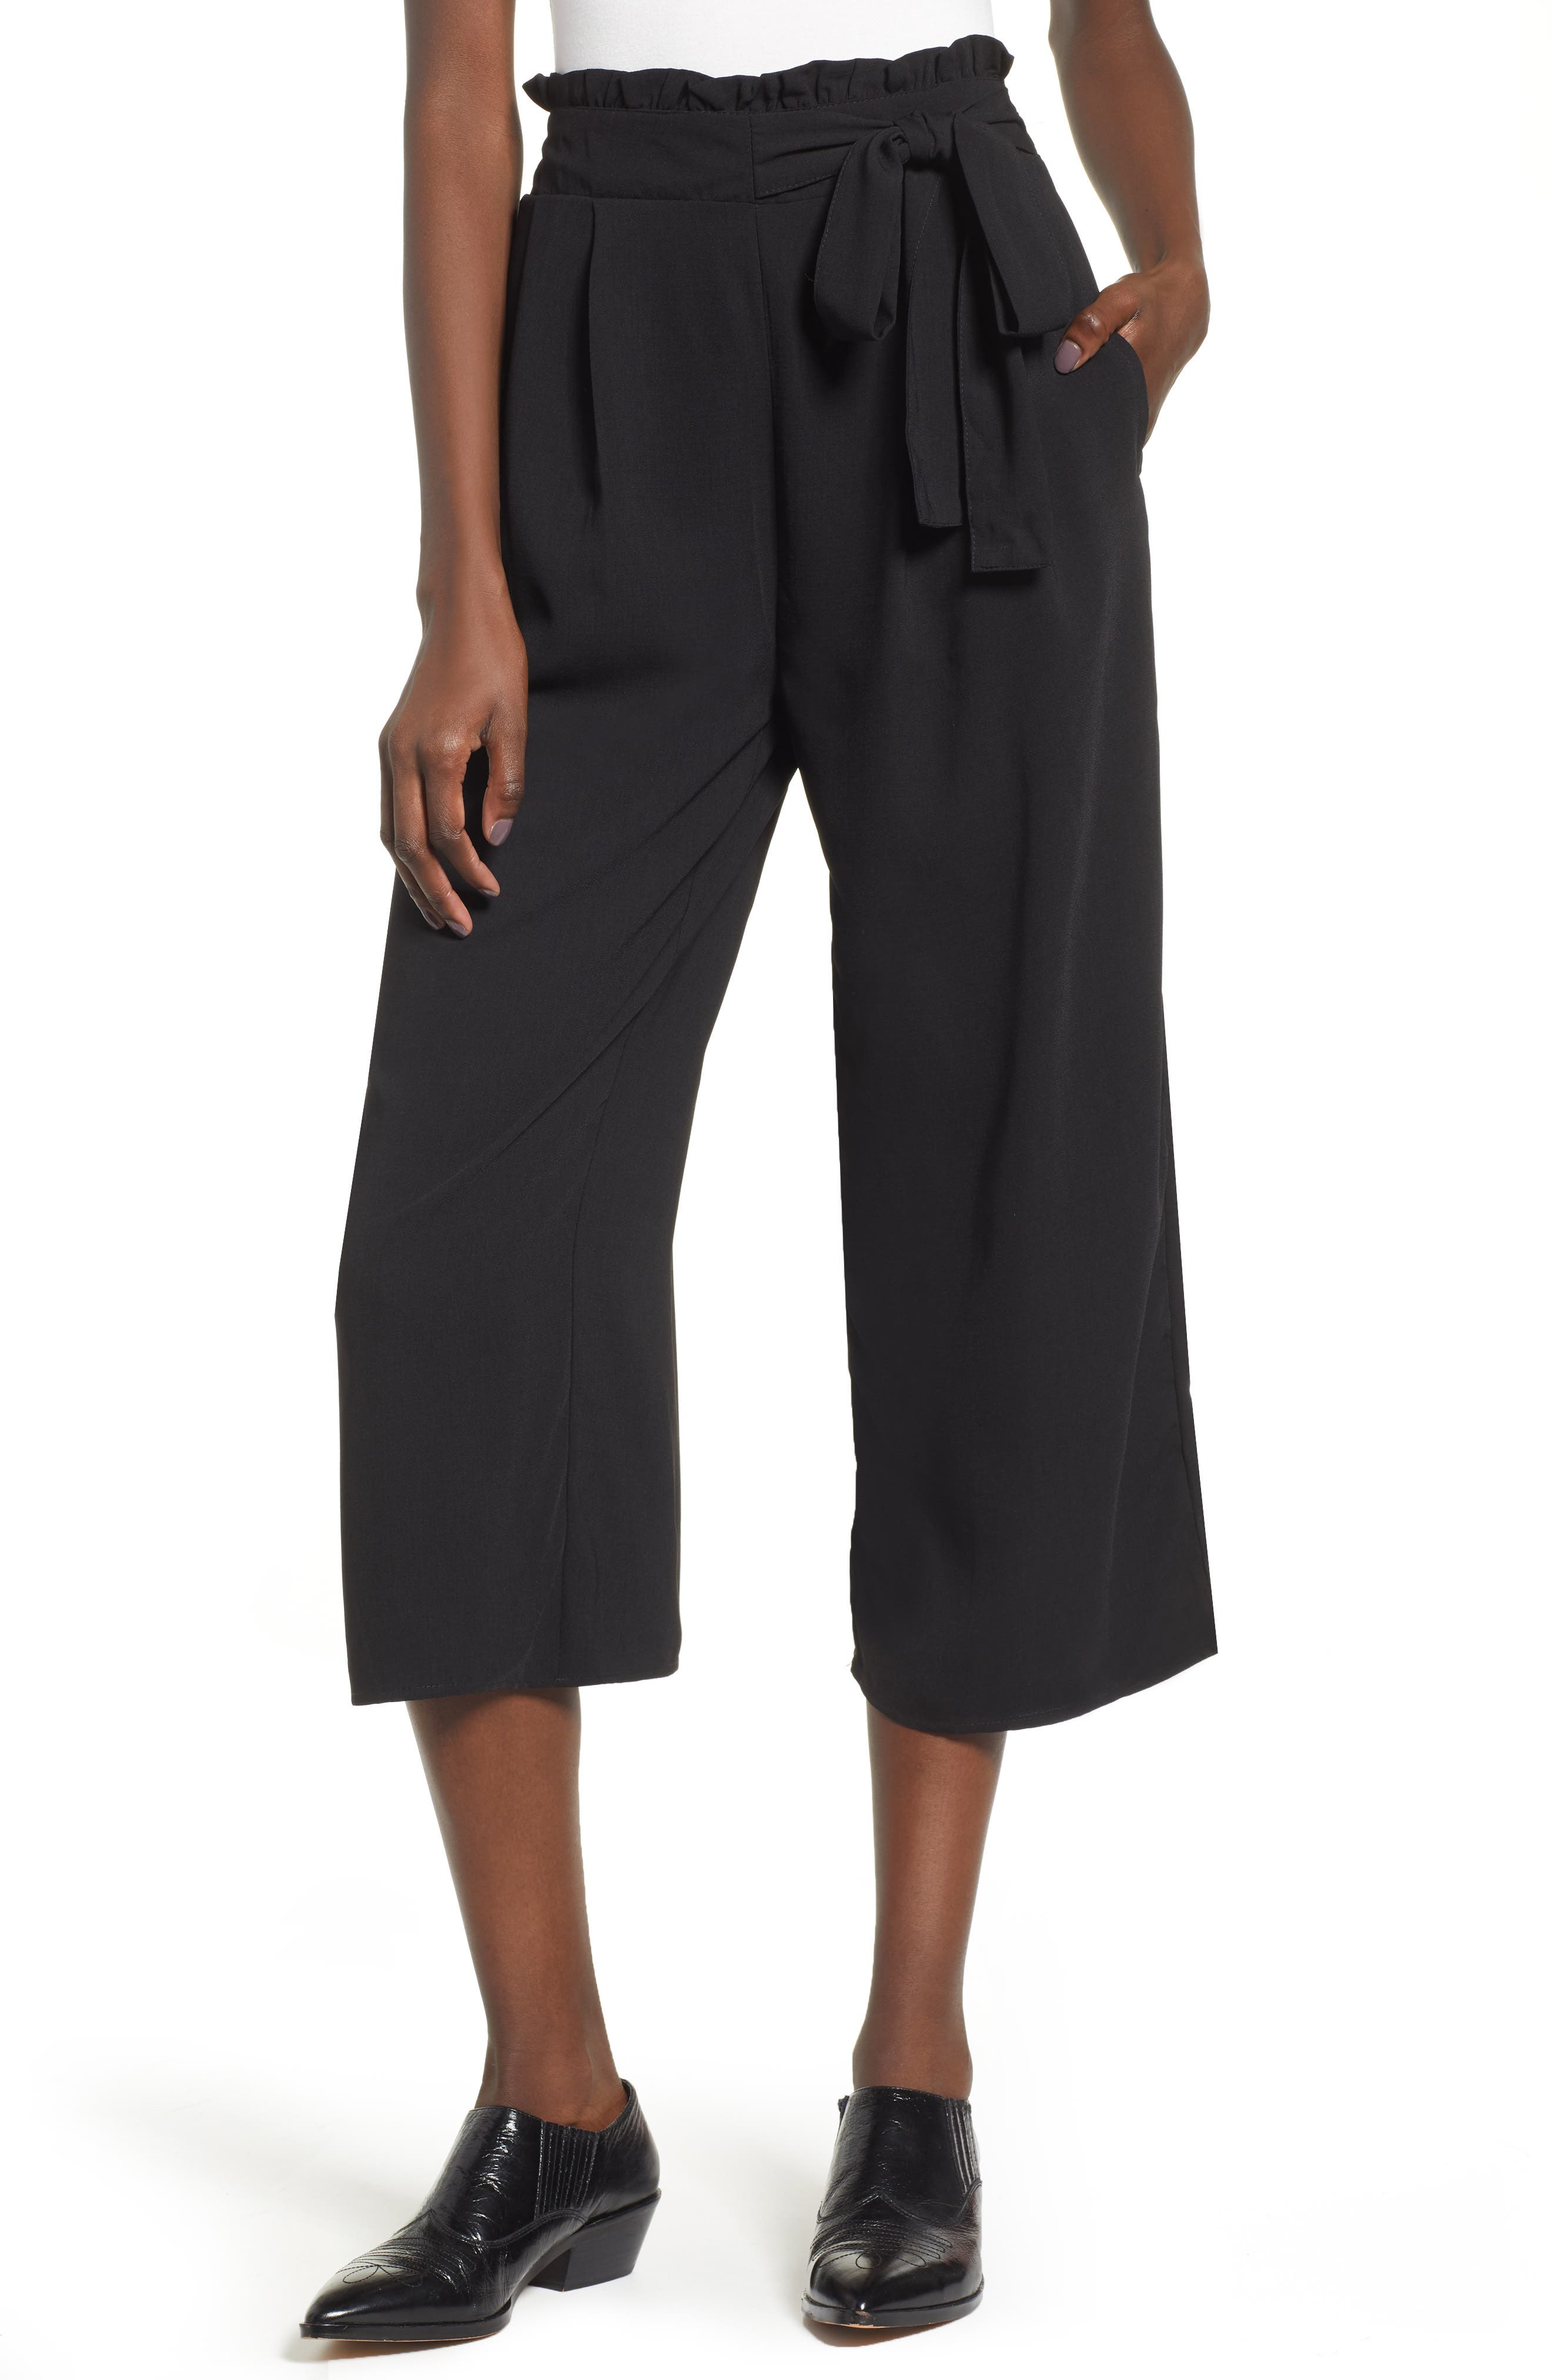 BAND OF GYPSIES Montana Belted Wide Leg Crop Pants in Black